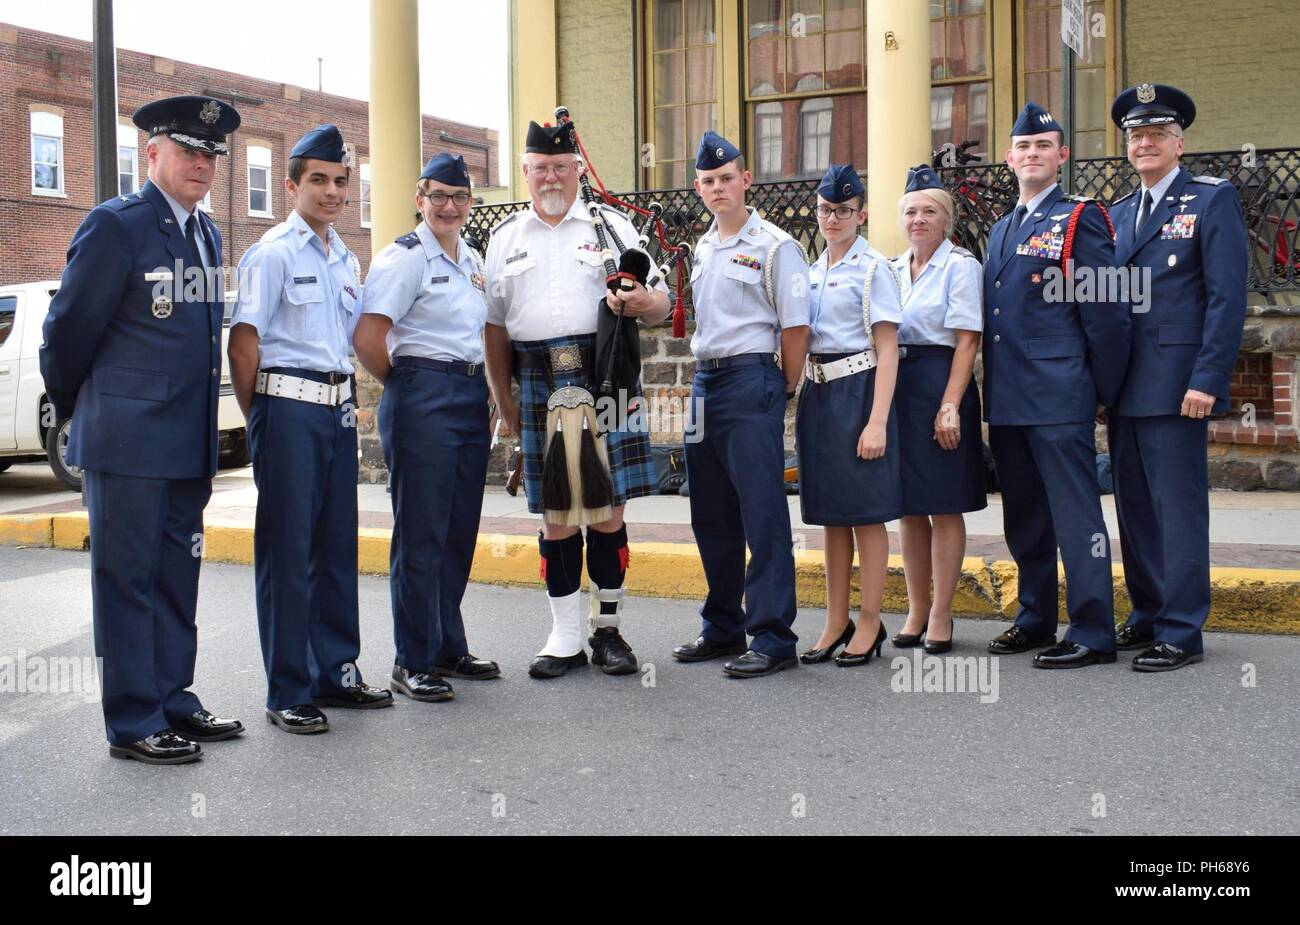 Following a roadway dedication ceremony in Boyertown Pa., June 28, 2018, Brig. Gen. Michael Regan, Pa. deputy adjutant general-air (left) posses with members of the Commander Gen. Carl A. Spaatz Composite Civil Air Patrol Squadron from Limerick, Pa. The young Cadets opened the event with the Presentation of the Colors and provided the backdrop during Regan's keynote speech during the gathering. - Stock Image